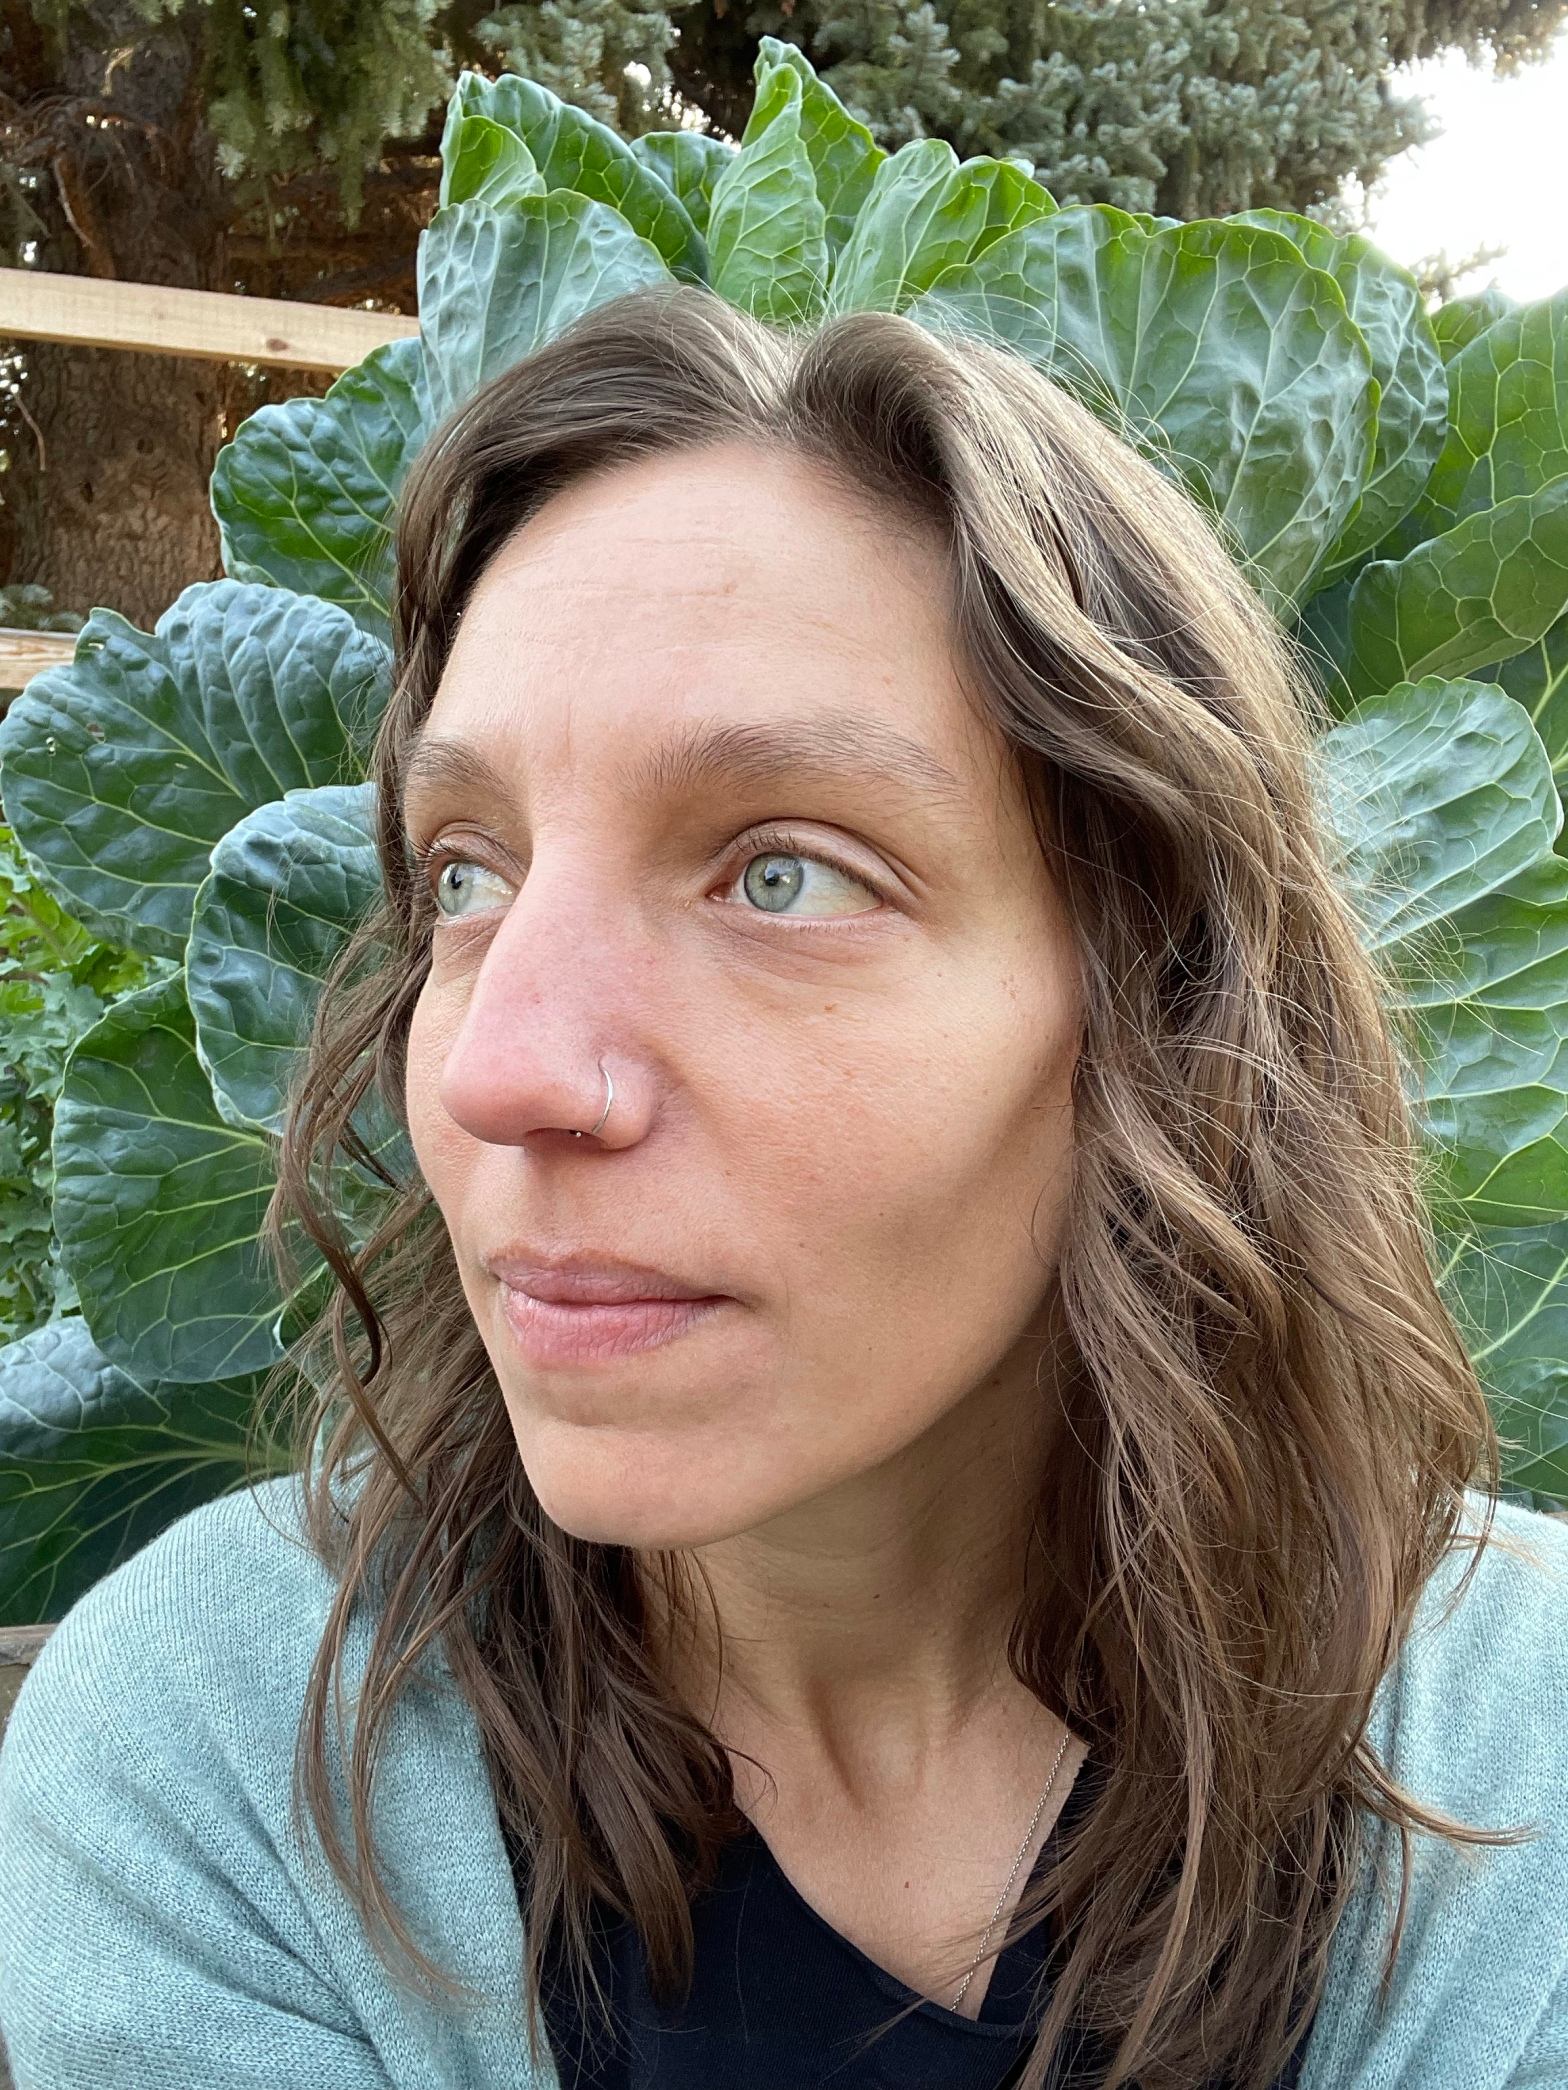 selfie style image of a white woman with brown hair and green eyes who has given up on plucking her eyebrows, looking to the side, with large Brussel sprout growing in the background